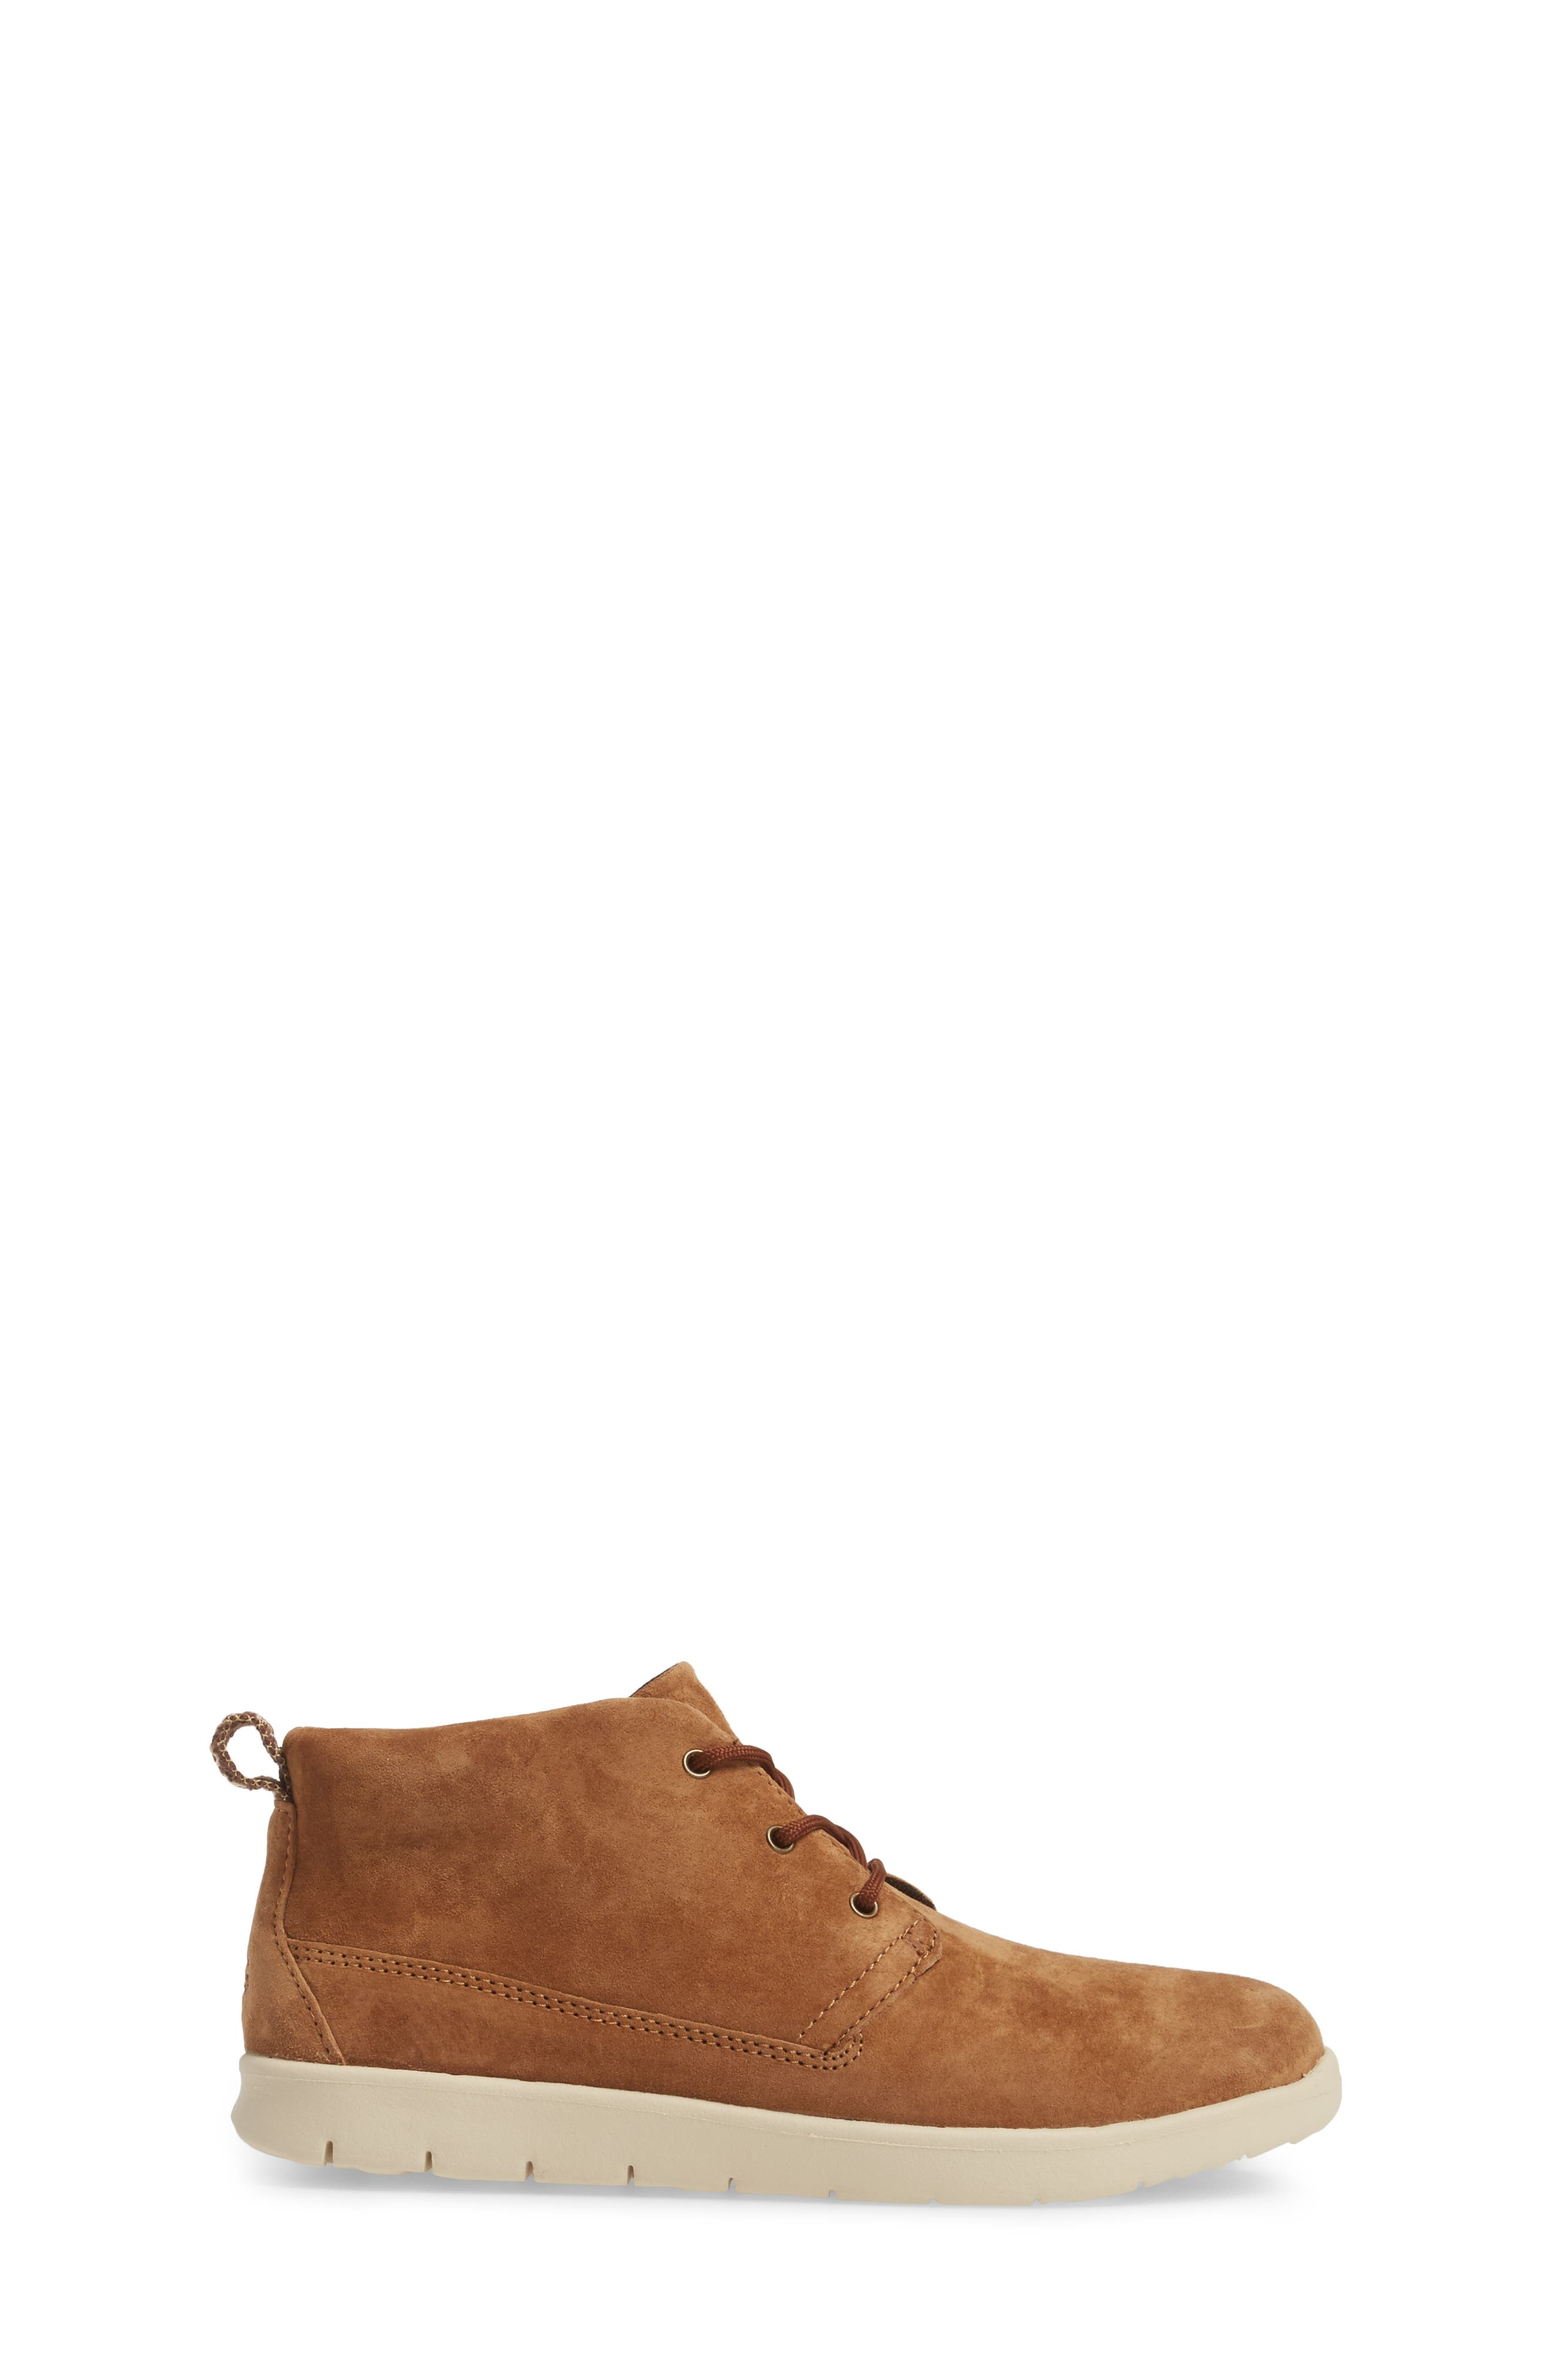 Alternate Image 3  - UGG® Canoe Chukka Boot (Walker, Toddler, Little Kid & Big Kid)